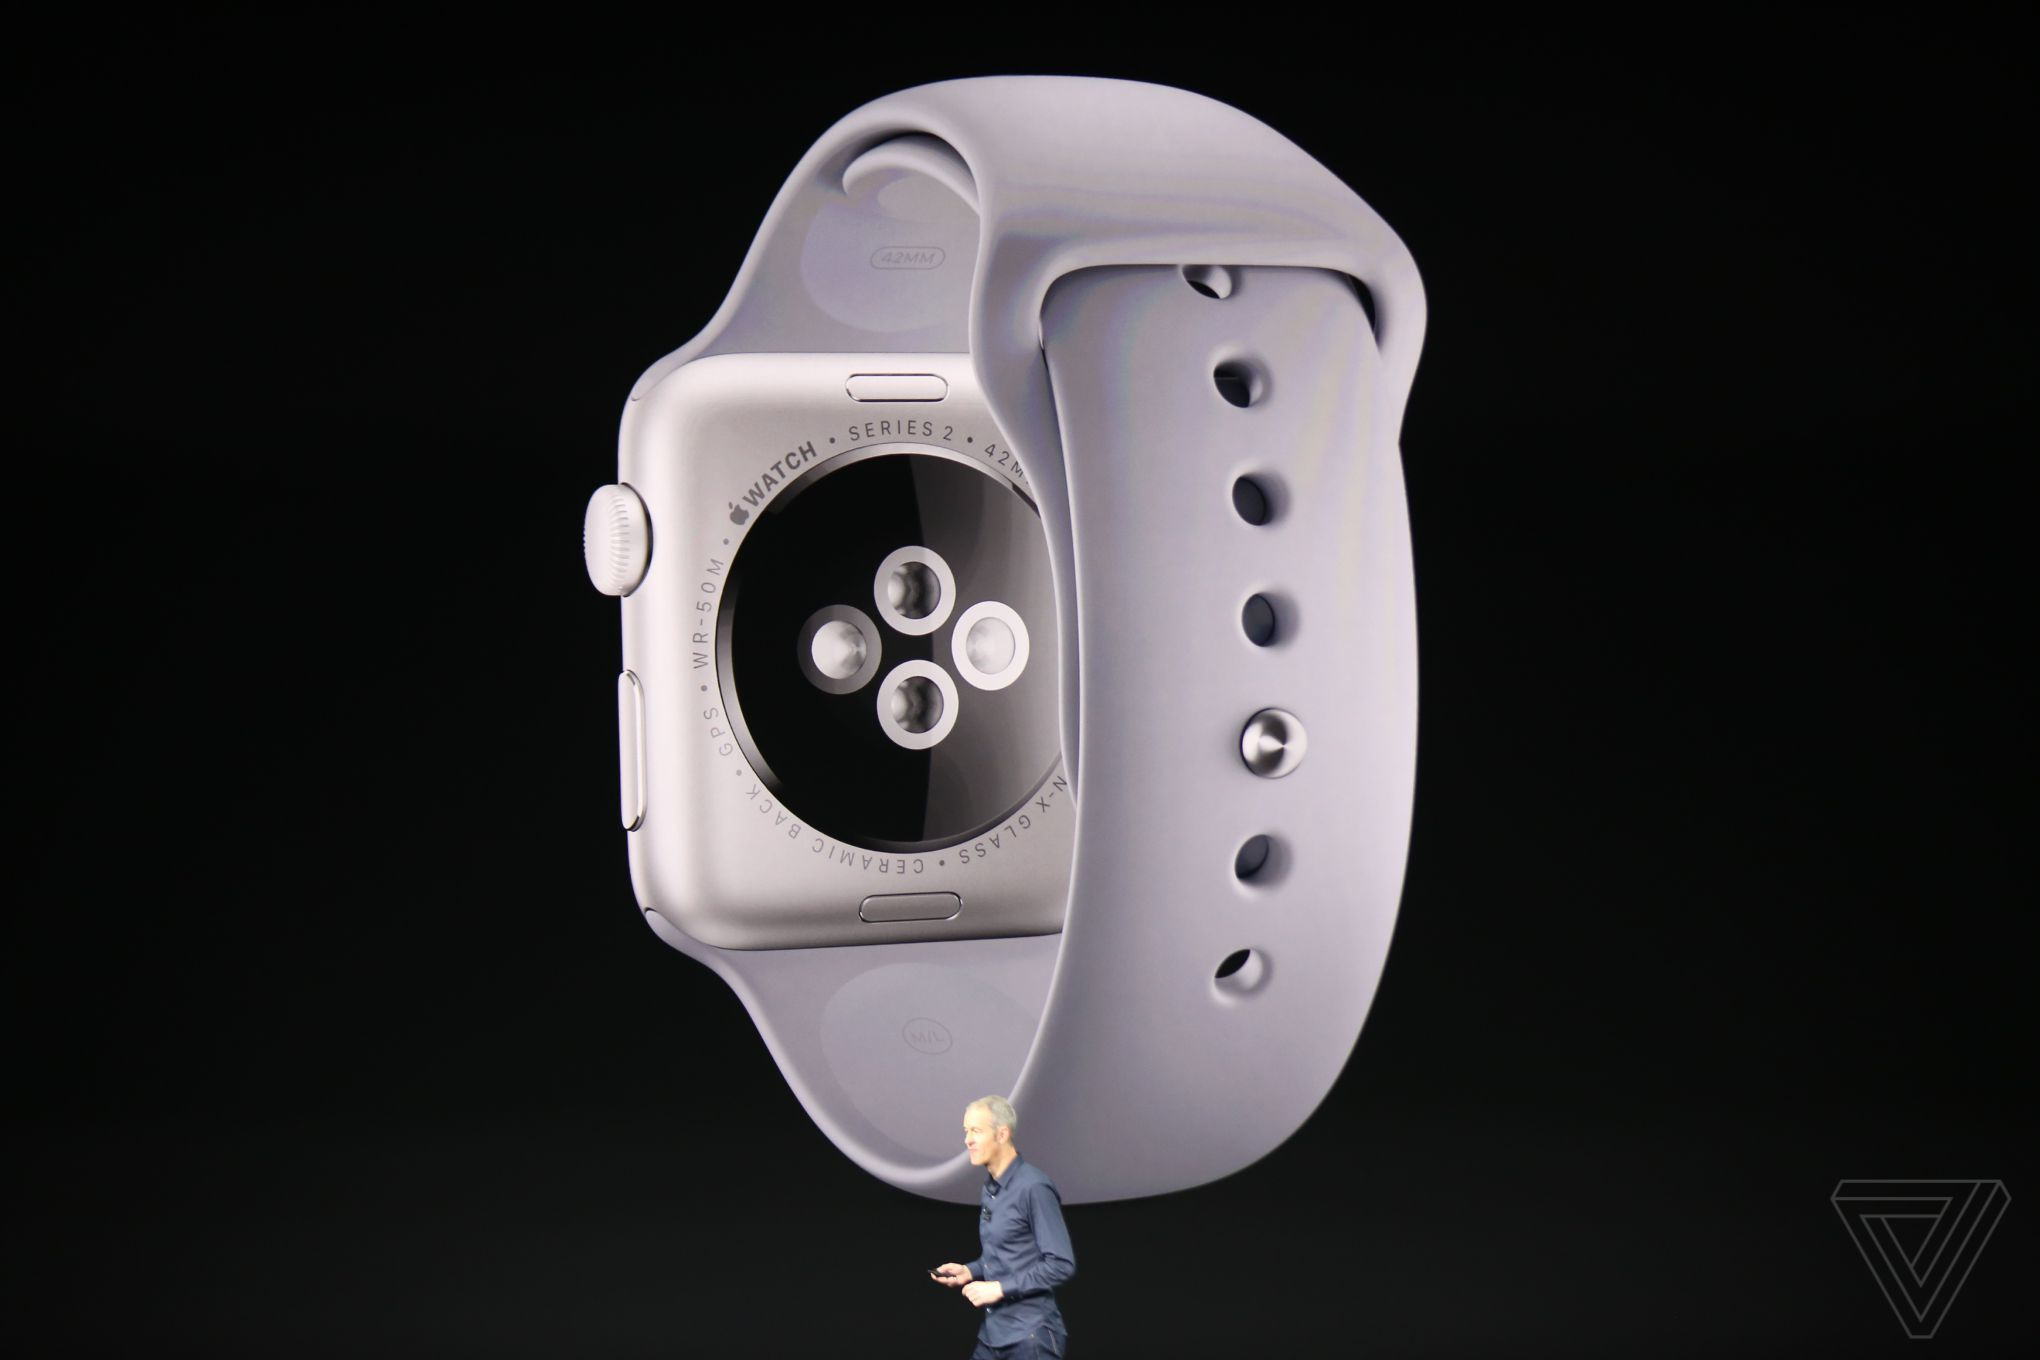 Apple Inc. (AAPL) Watch Dominates A Dying Industry